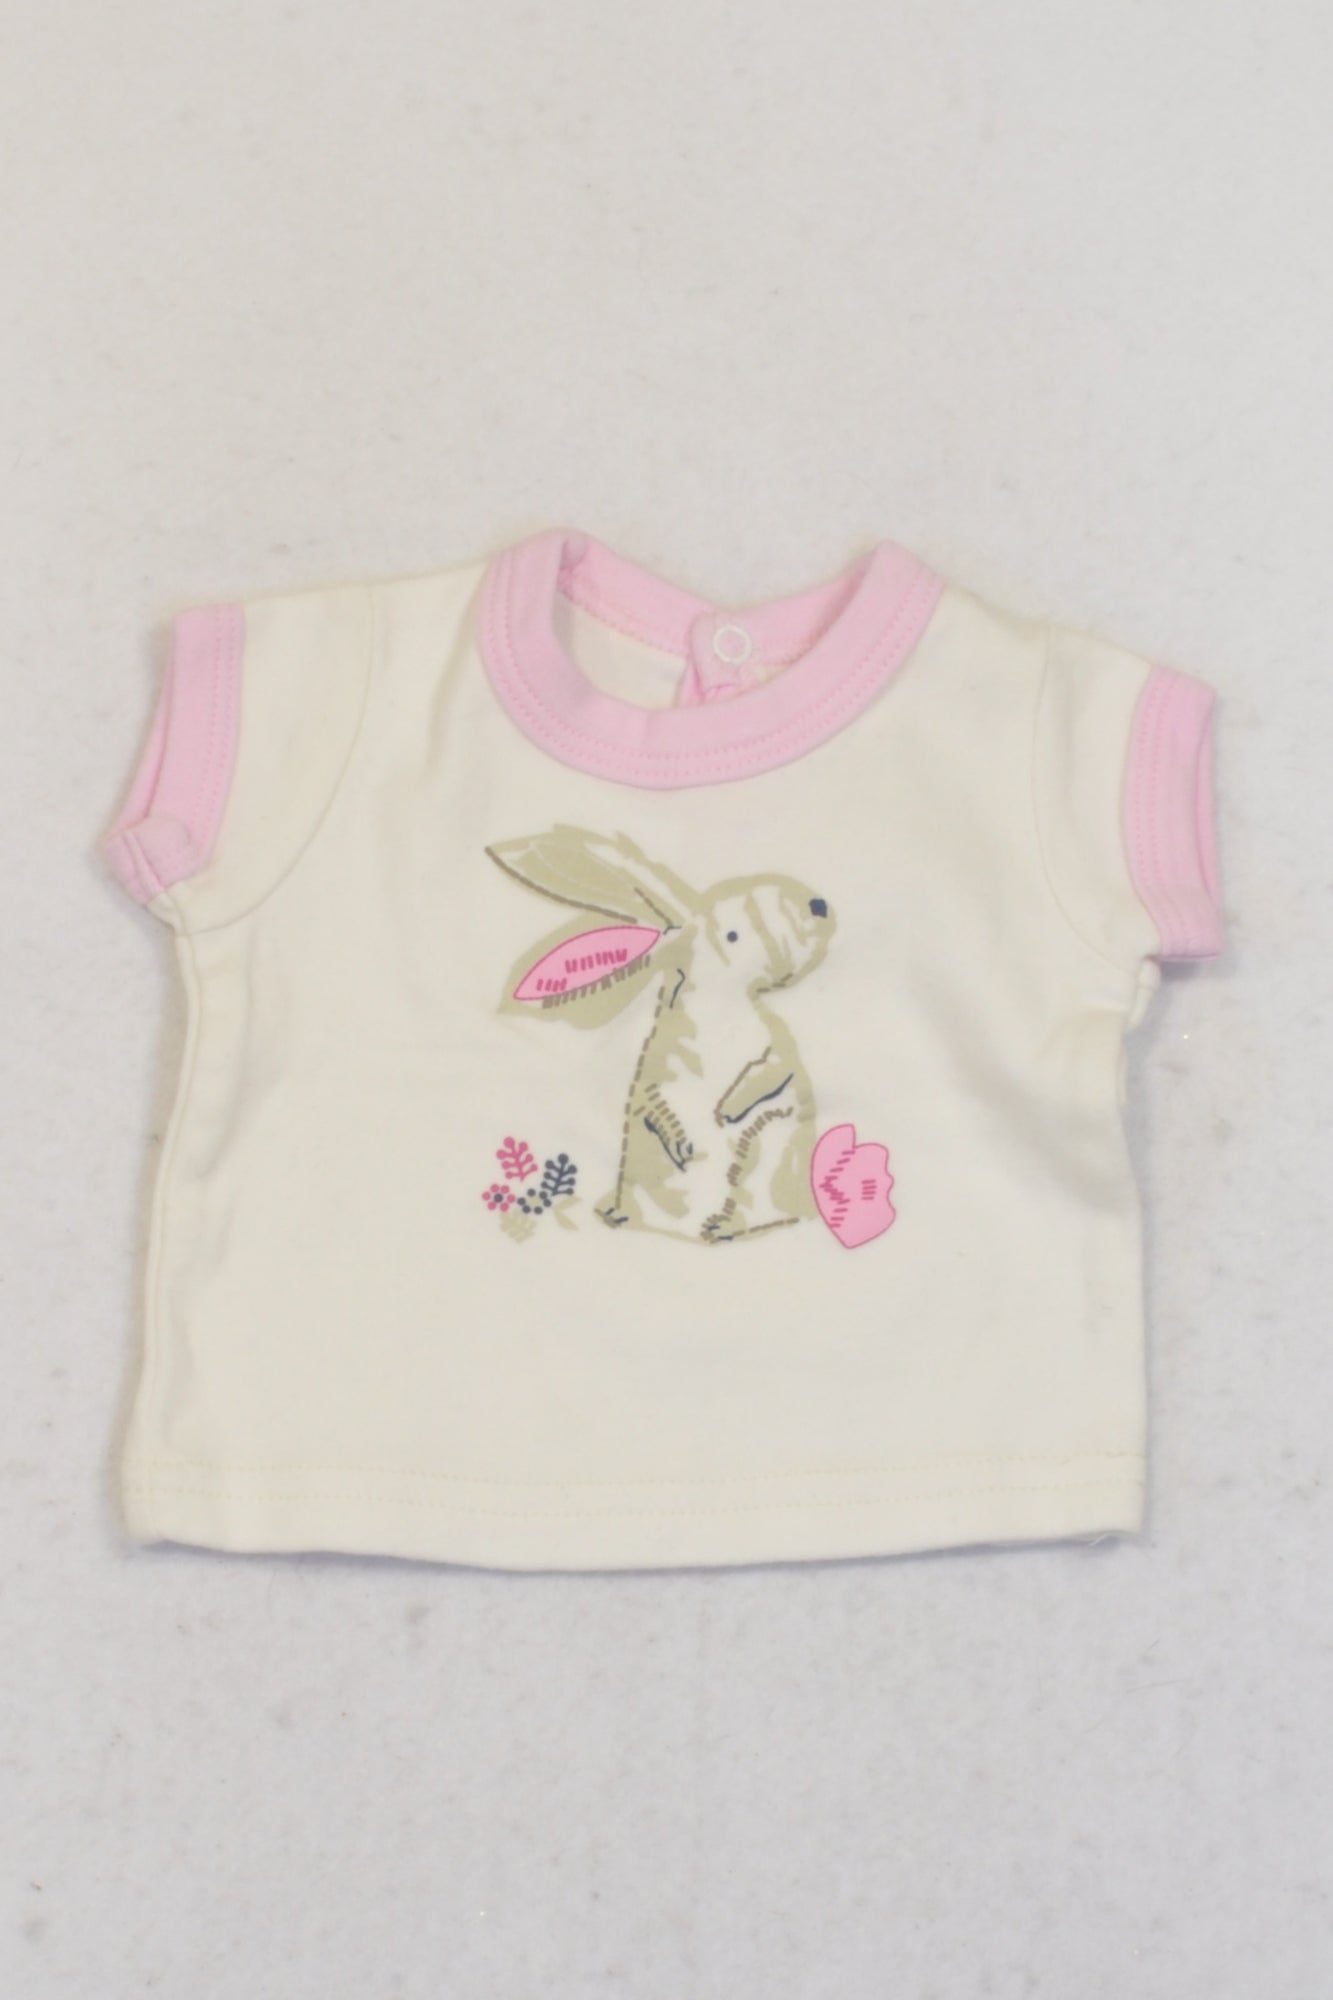 Little Legend Pink & Off White Bunny T-shirt Girls 0-3 months